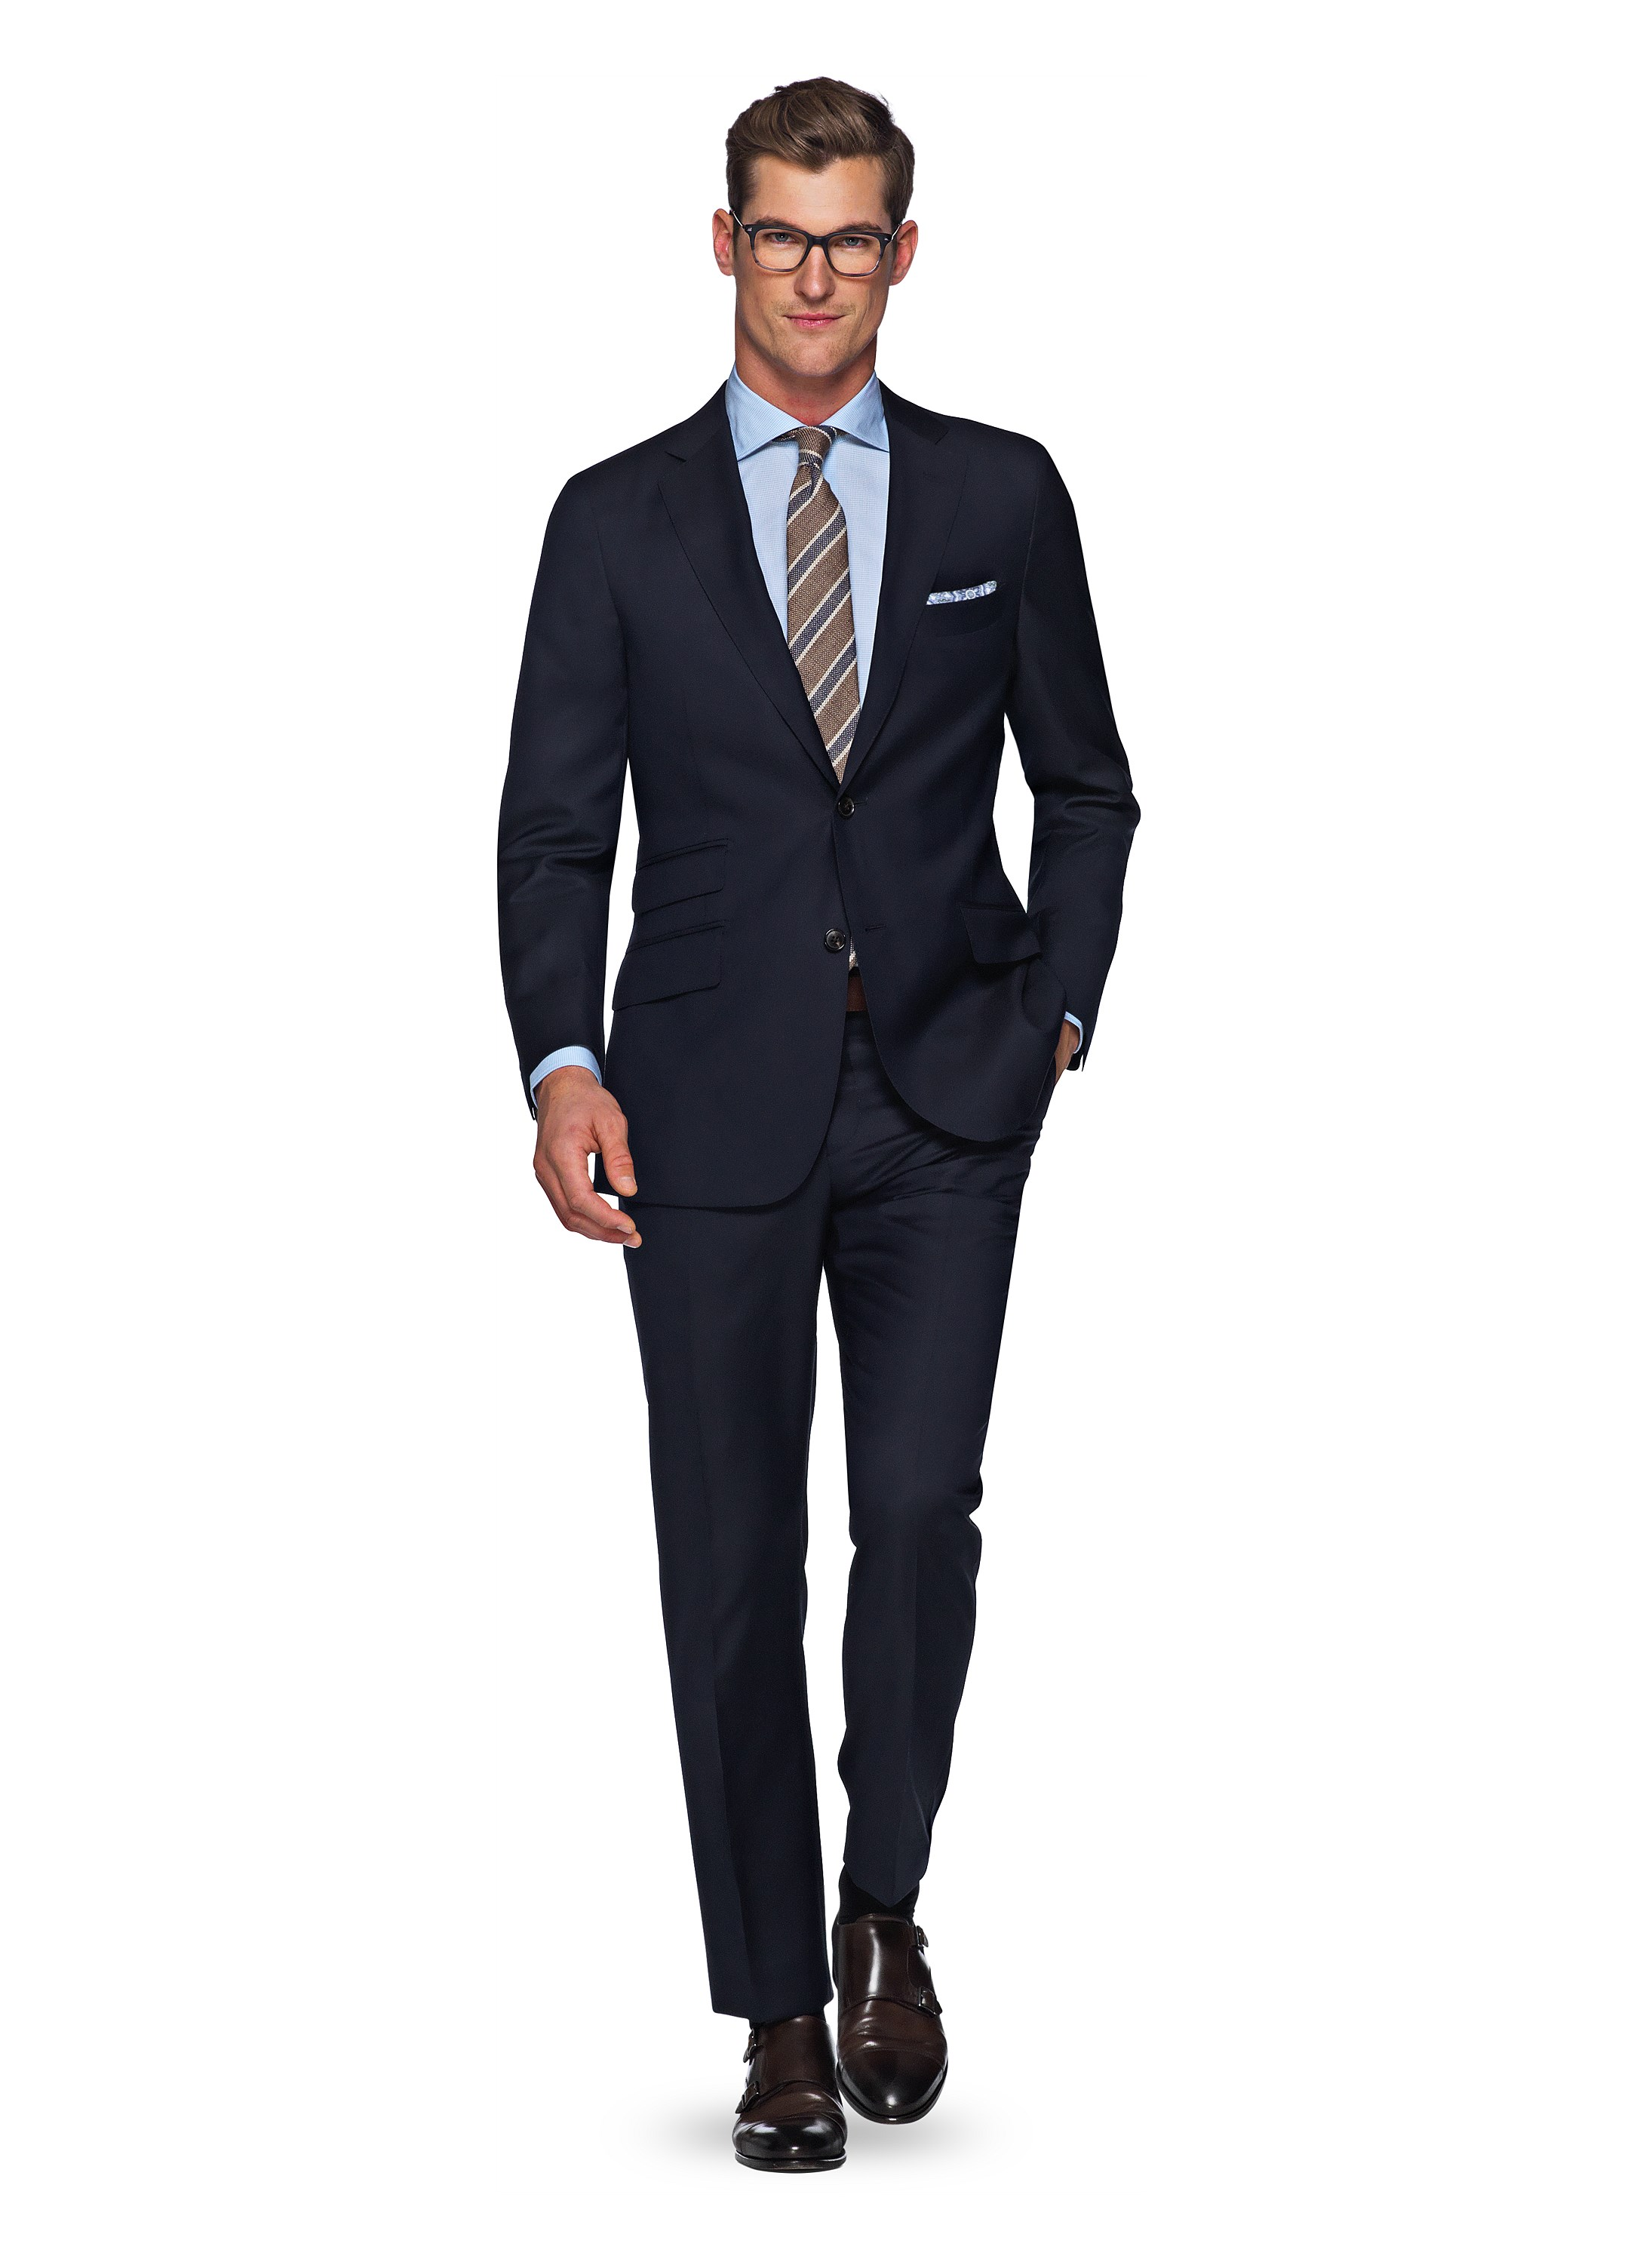 Suits_Navy_Plain_Sienna_P3467_Suitsupply_Online_Store_1.jpg